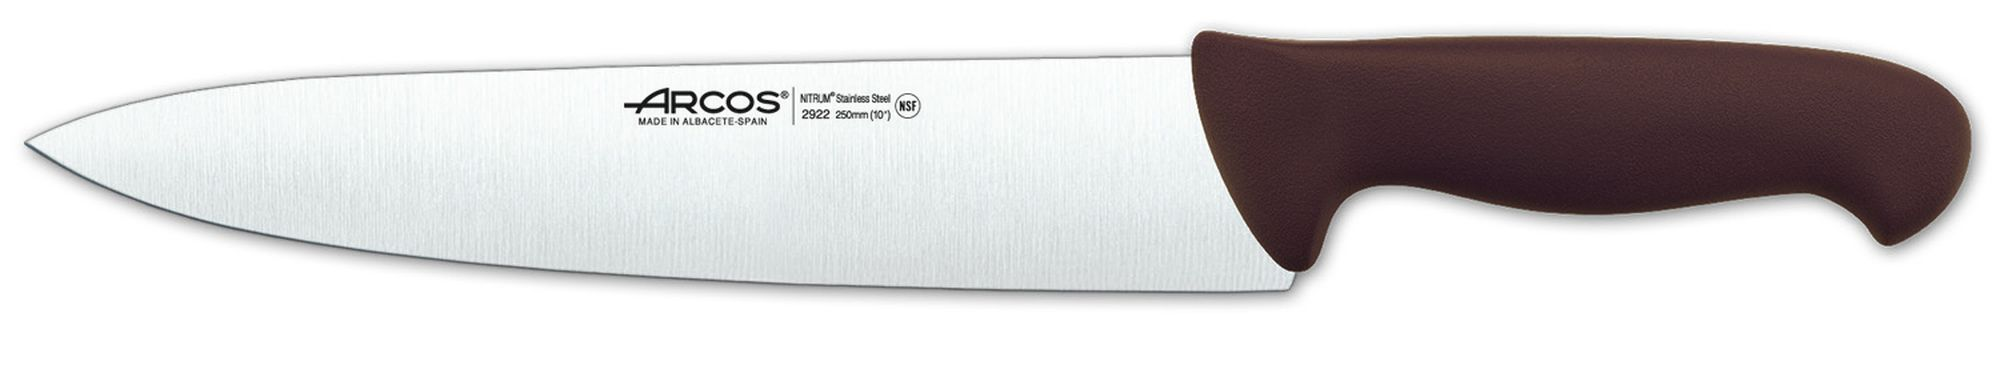 Chef�s Knife Arcos ref.: 292228